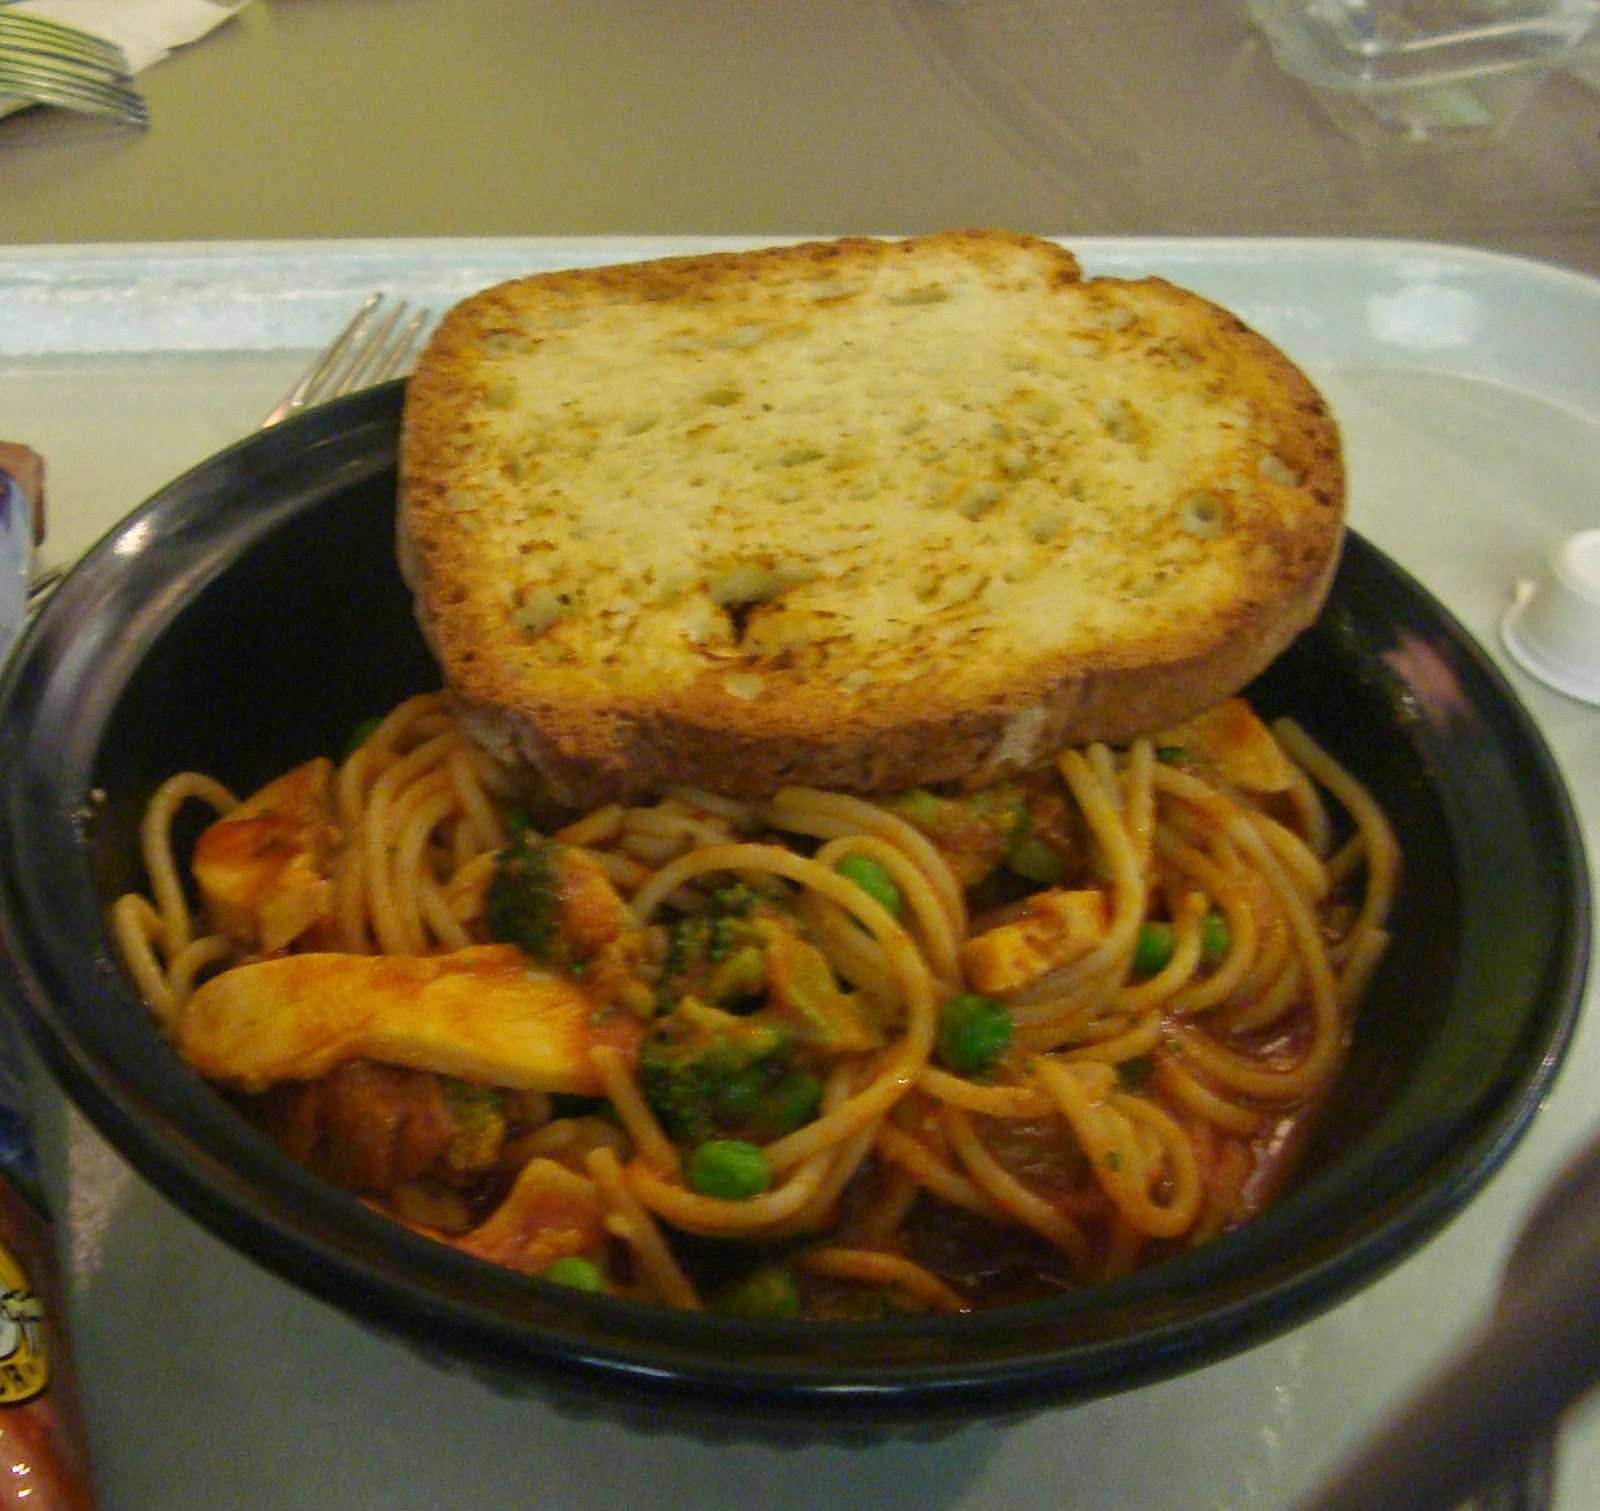 Gluten Free Pasta and Garlic Bread